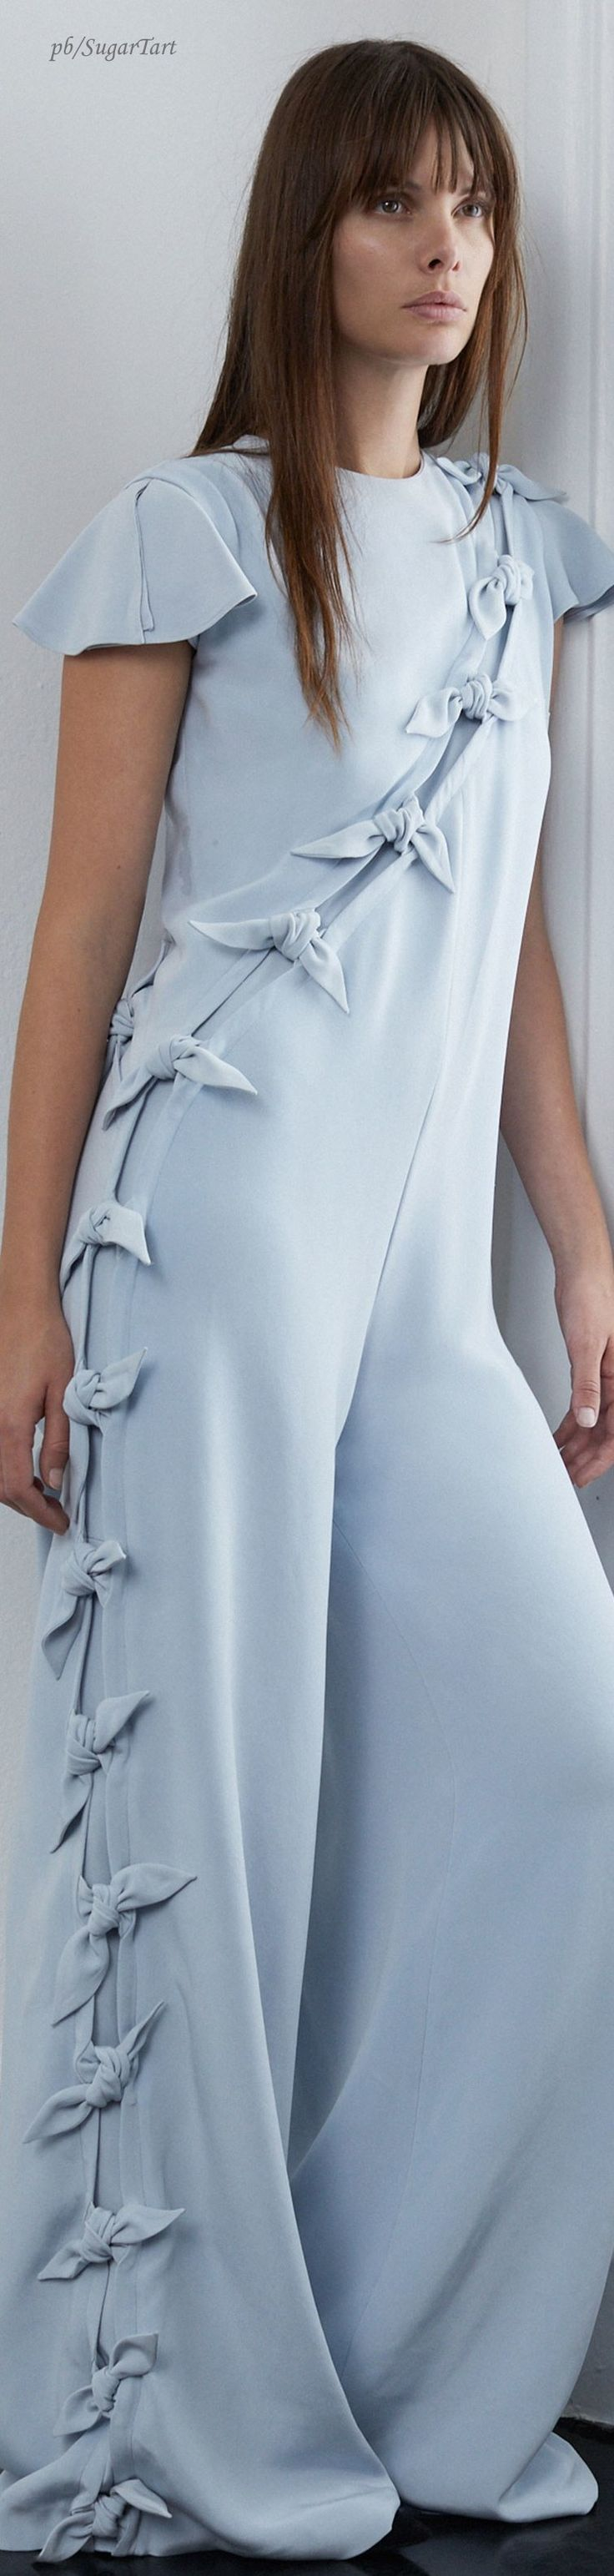 Lein – Fall 2018 Bridal – I'd do a dress. Maybe 2 tone it. And give it longer sleeves. Stretch silk maybe. And V neck. – Tonie Green